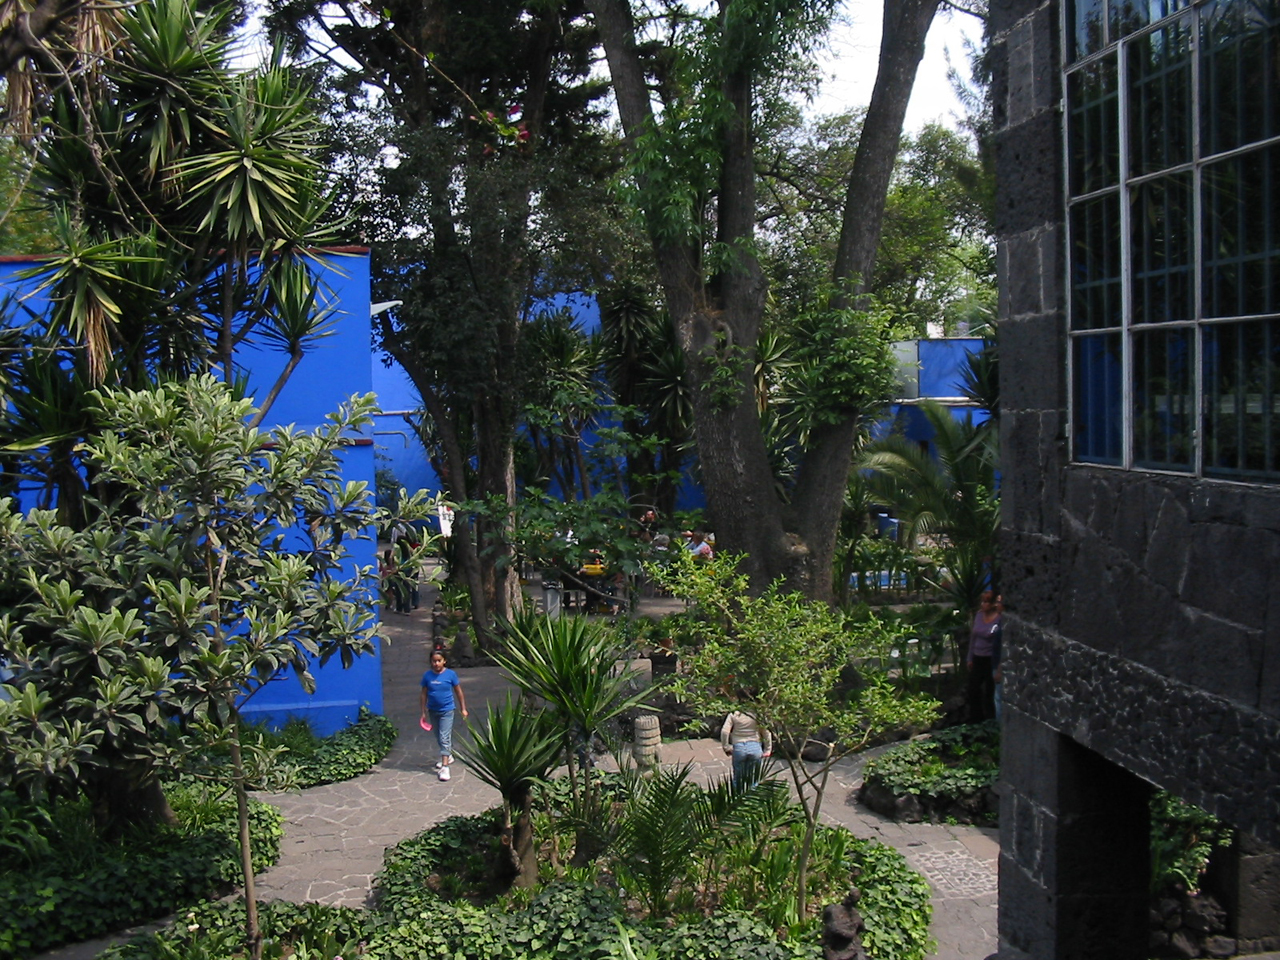 The garden today at the Museo Frida Kahlo, housed in the artist's former home, La Casa Azul (photo by Thelmadatter/Wikipedia)